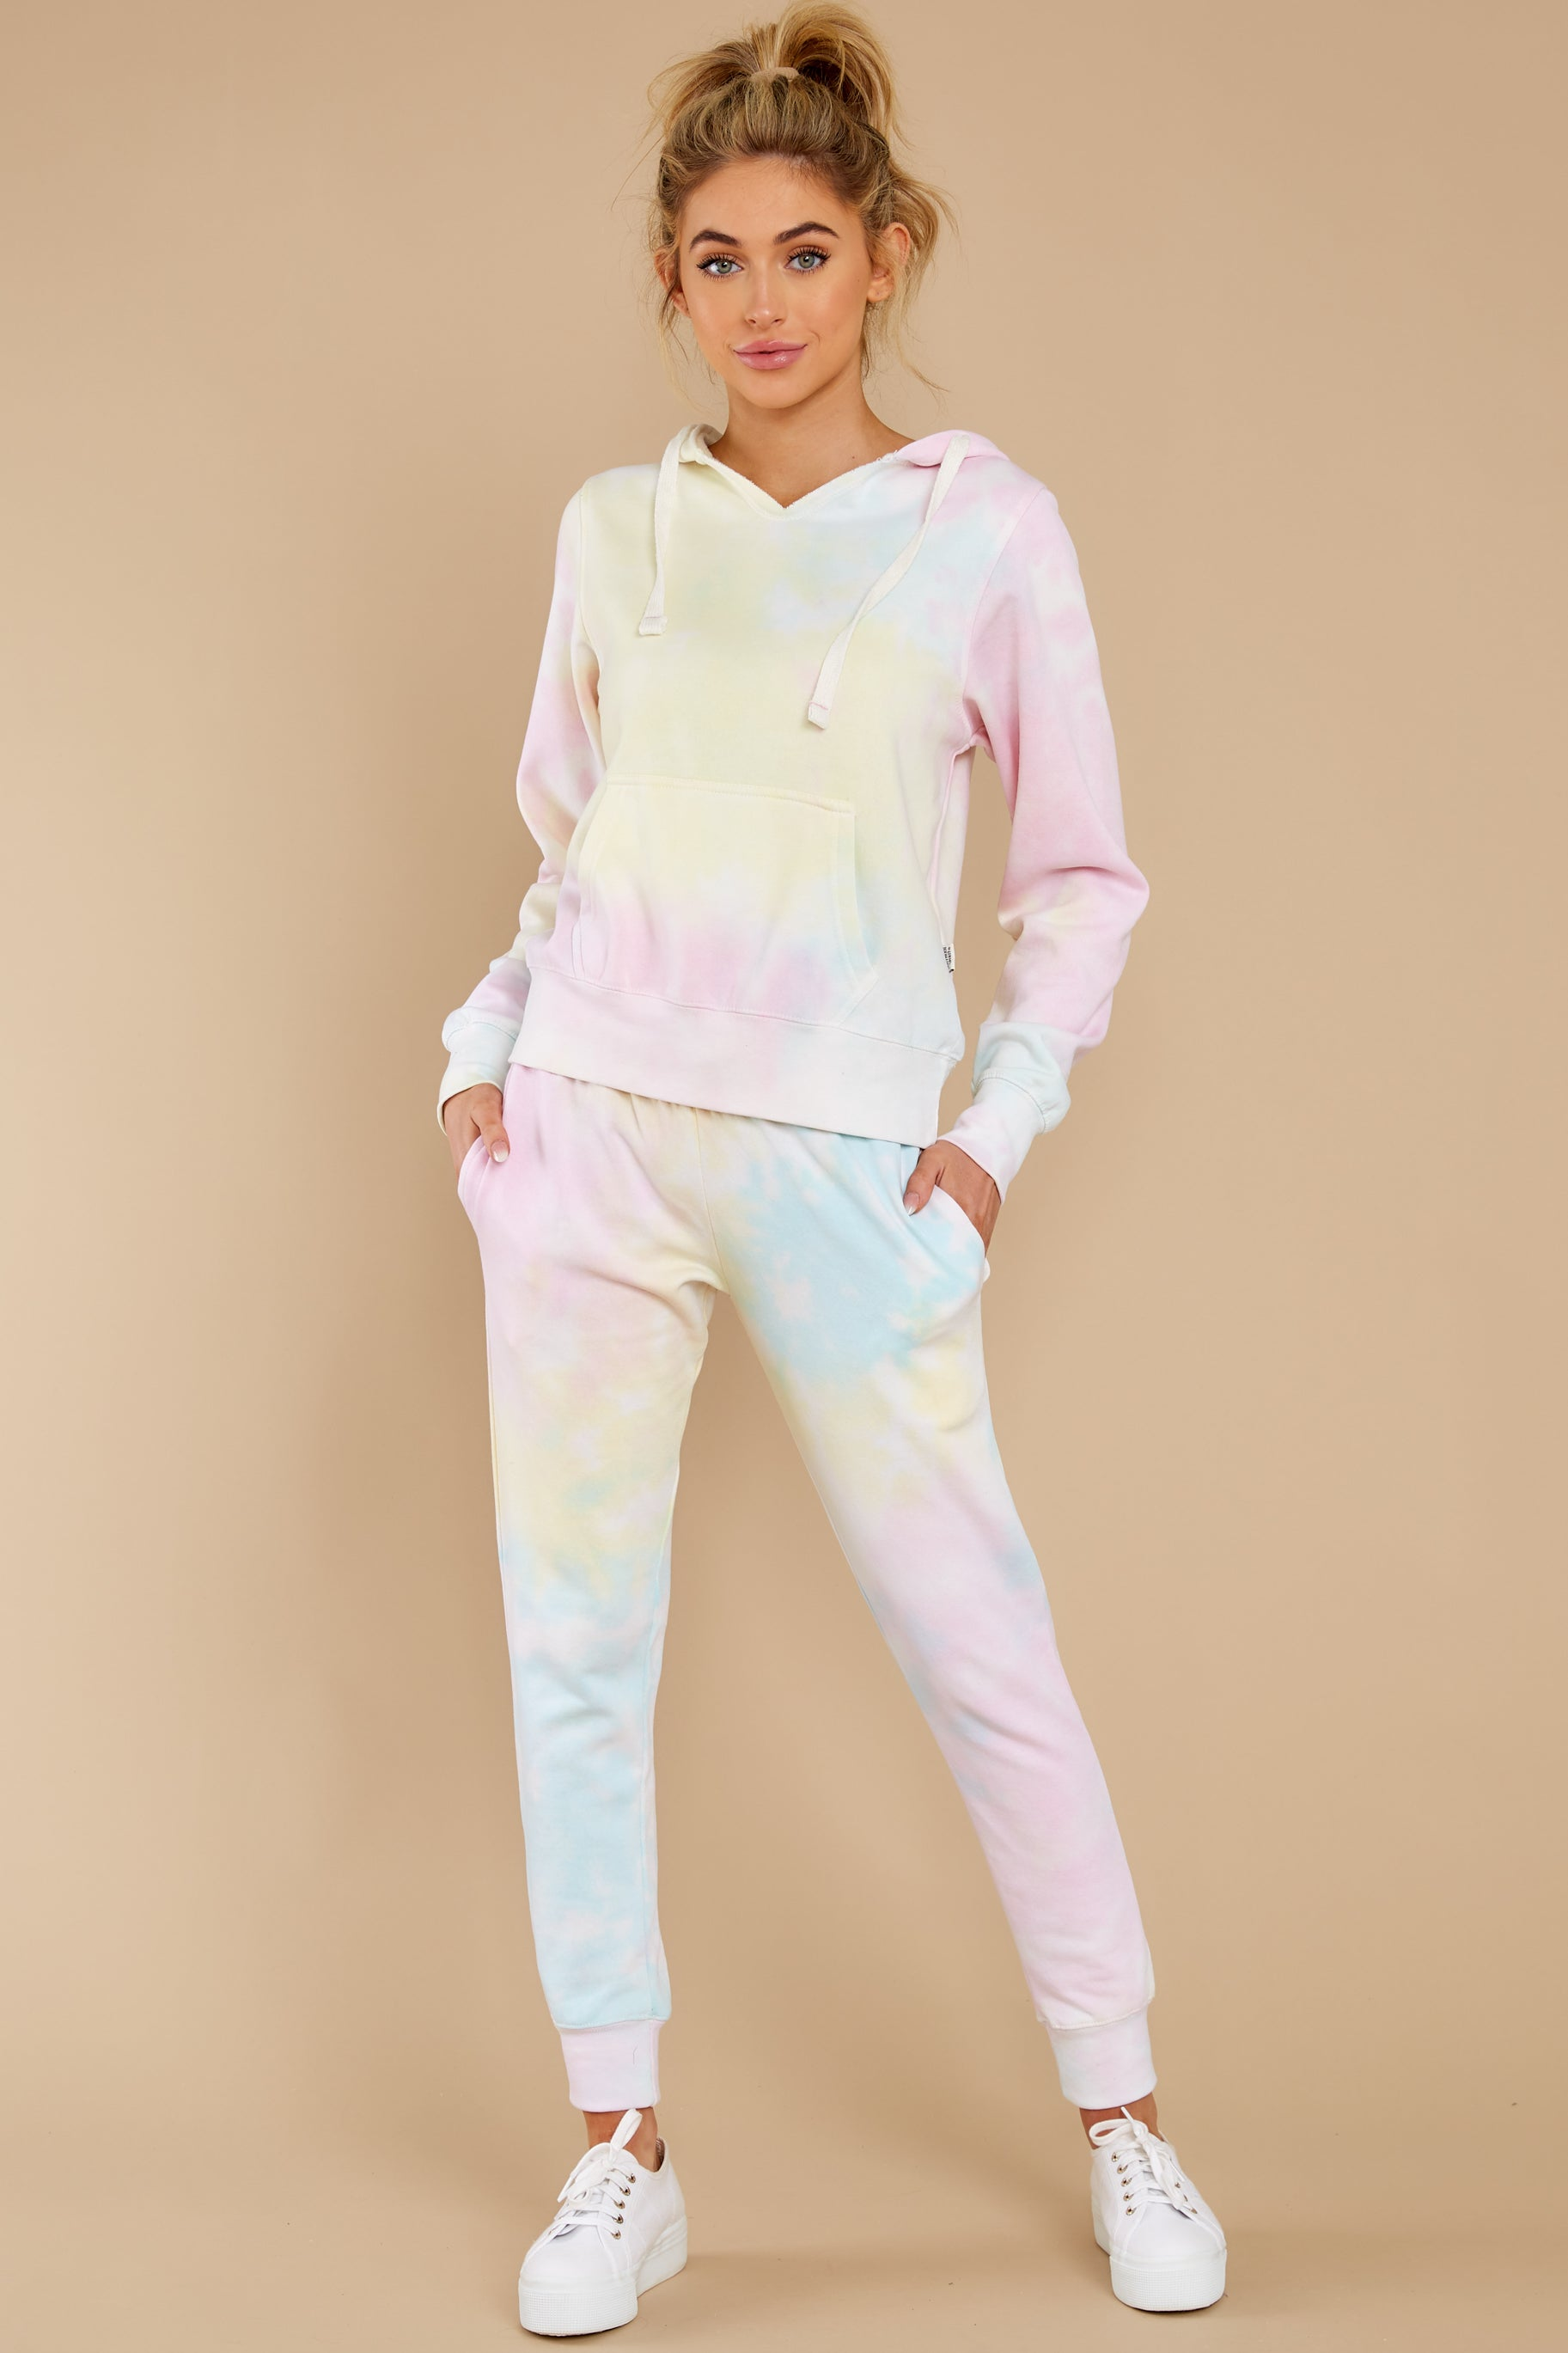 4 Electric Dreamer Sweet Confetti Tie Dye Joggers at reddress.com